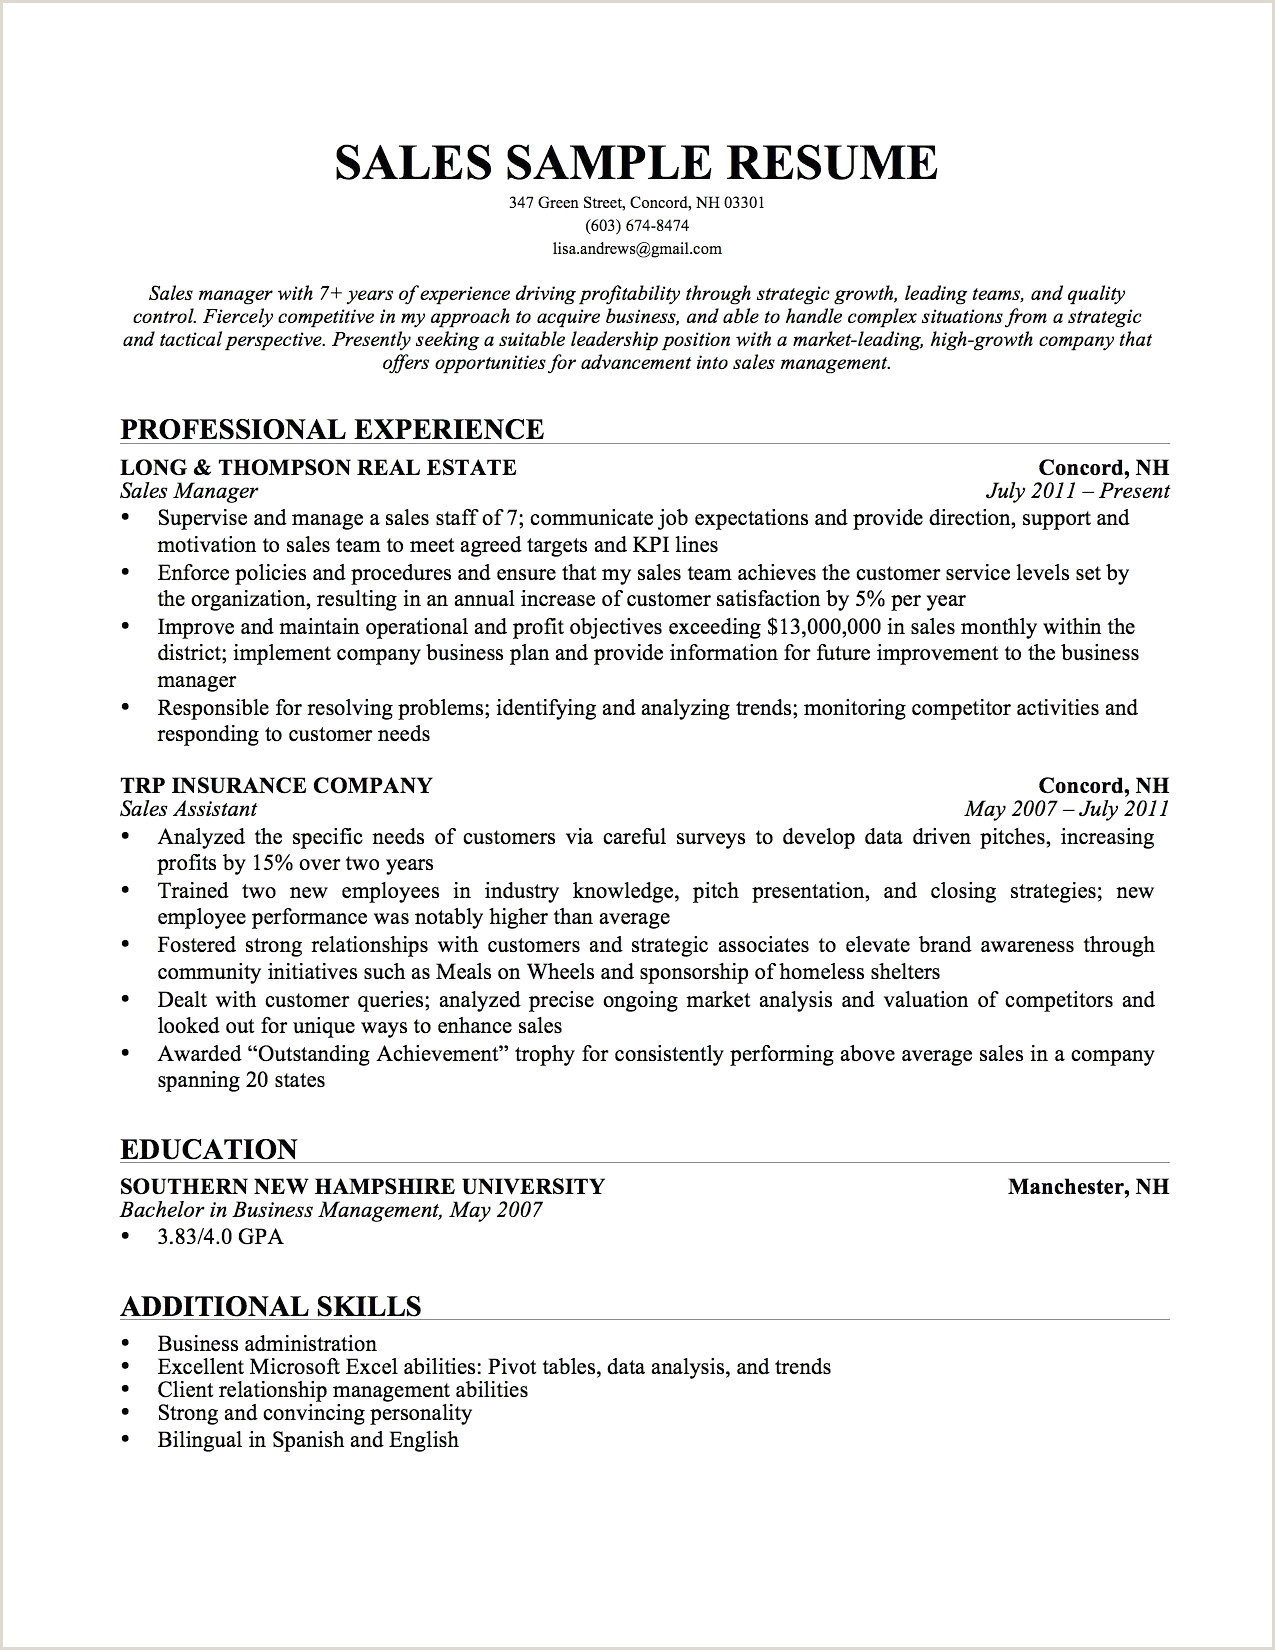 Cv format for Hospital Job Resume for Hospital Jobs Sample Resume Examples for Hospital